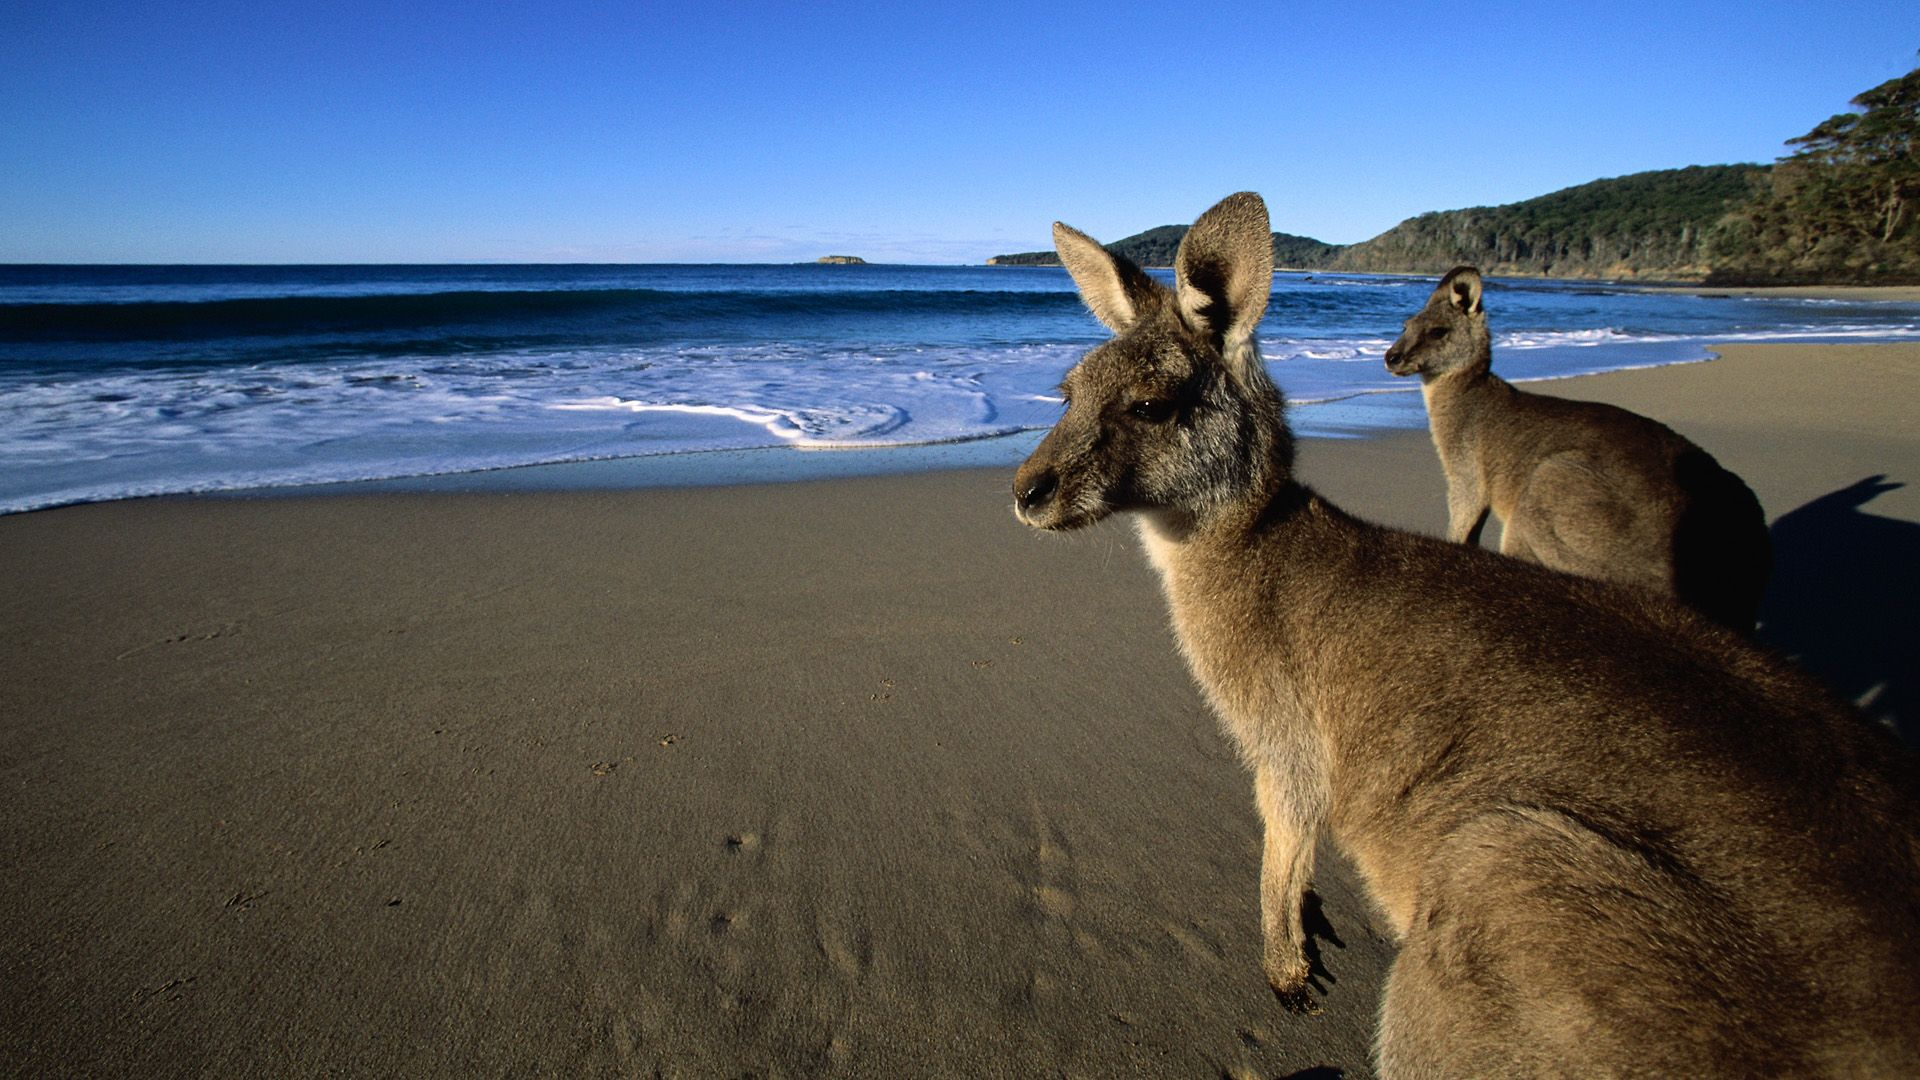 It's Australia! Who wouldn't want to see a Kangaroo. Best